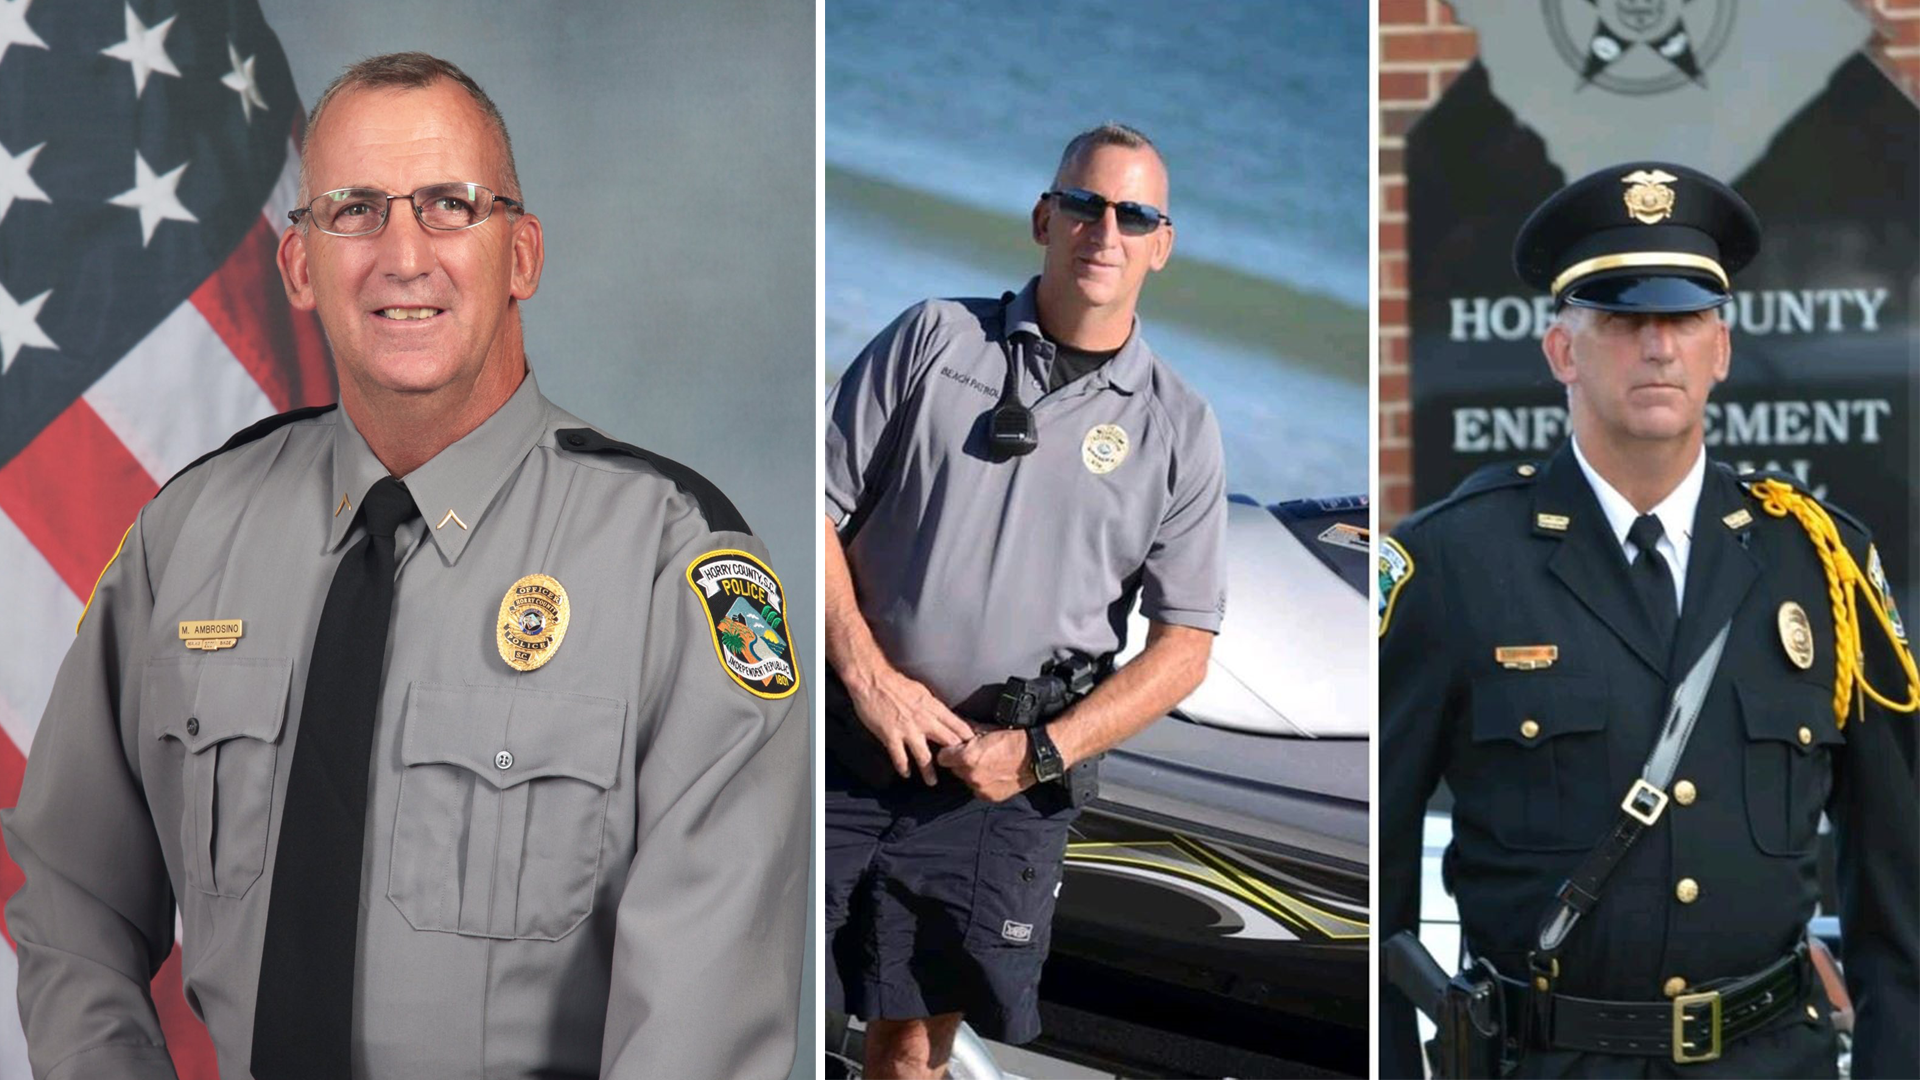 Fallen Horry County officer Michael Ambrosino added to National Police Memorial